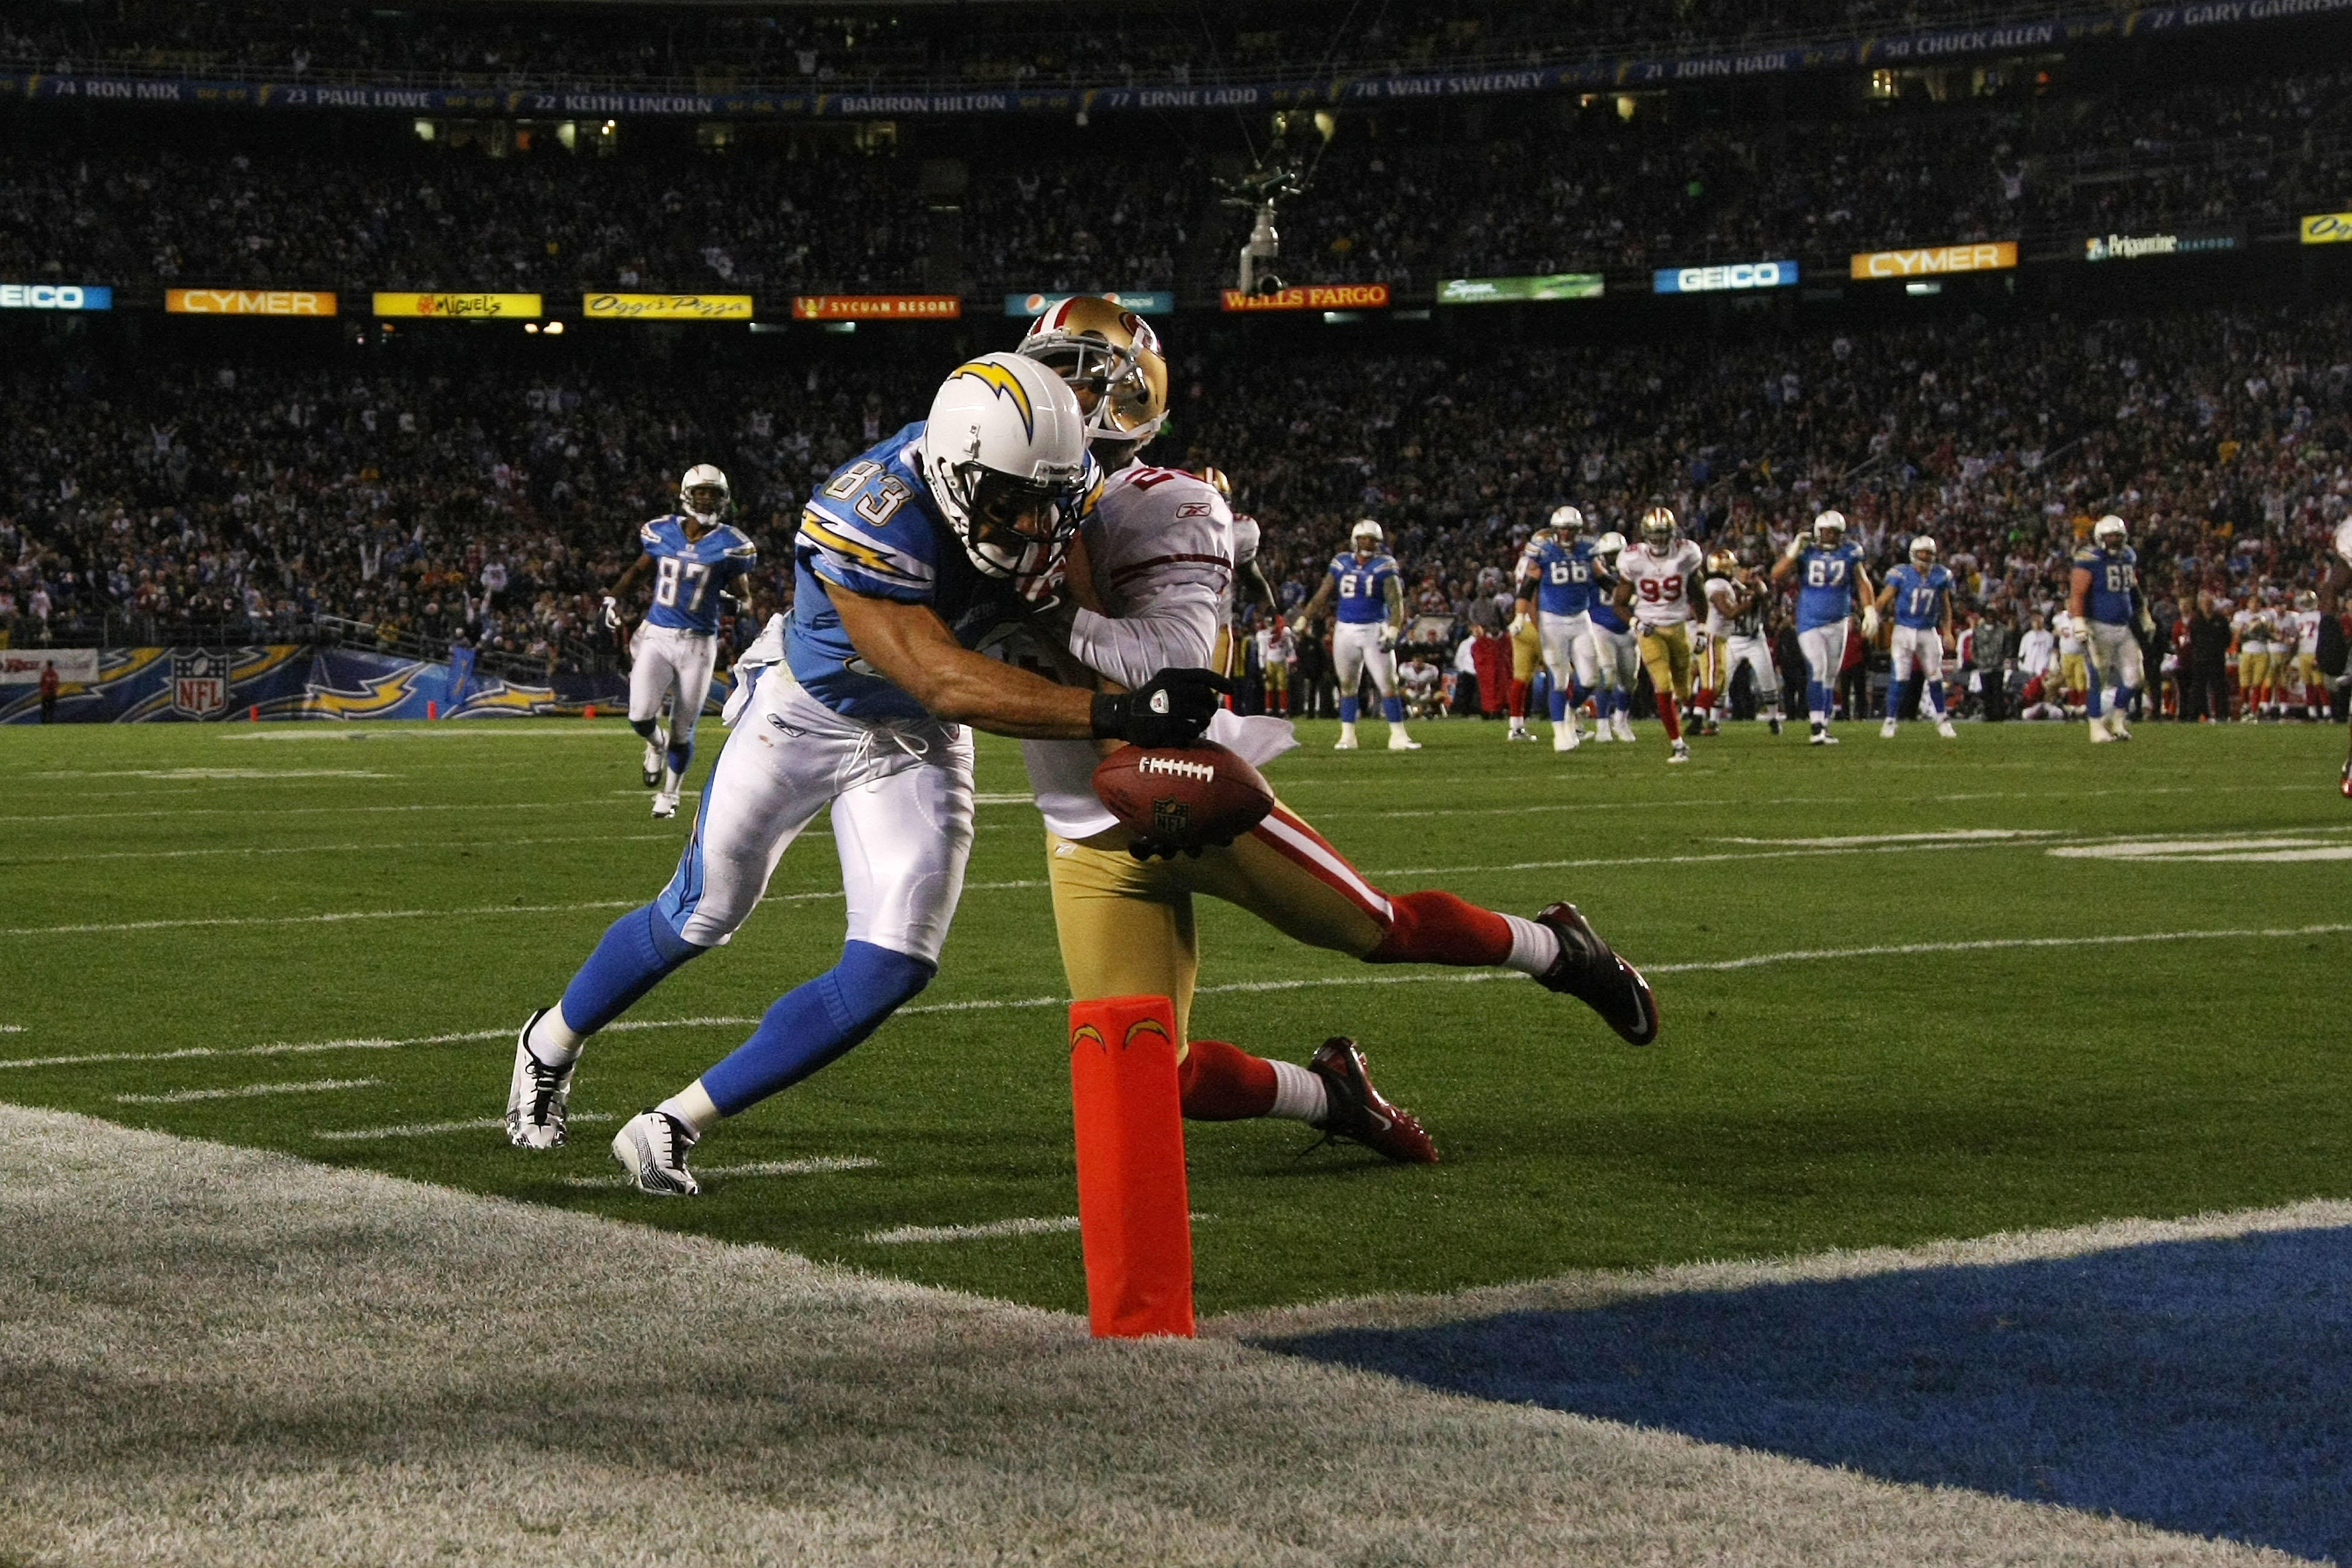 SAN DIEGO, CA - DECEMBER 16:  Wide receiver Vincent Jackson #83 of the San Diego Chargers dives into the endzone for a touchdown in the fourth quarter against the San Francisco 49ers at Qualcomm Stadium on December 16, 2010 in San Diego, California.  (Pho